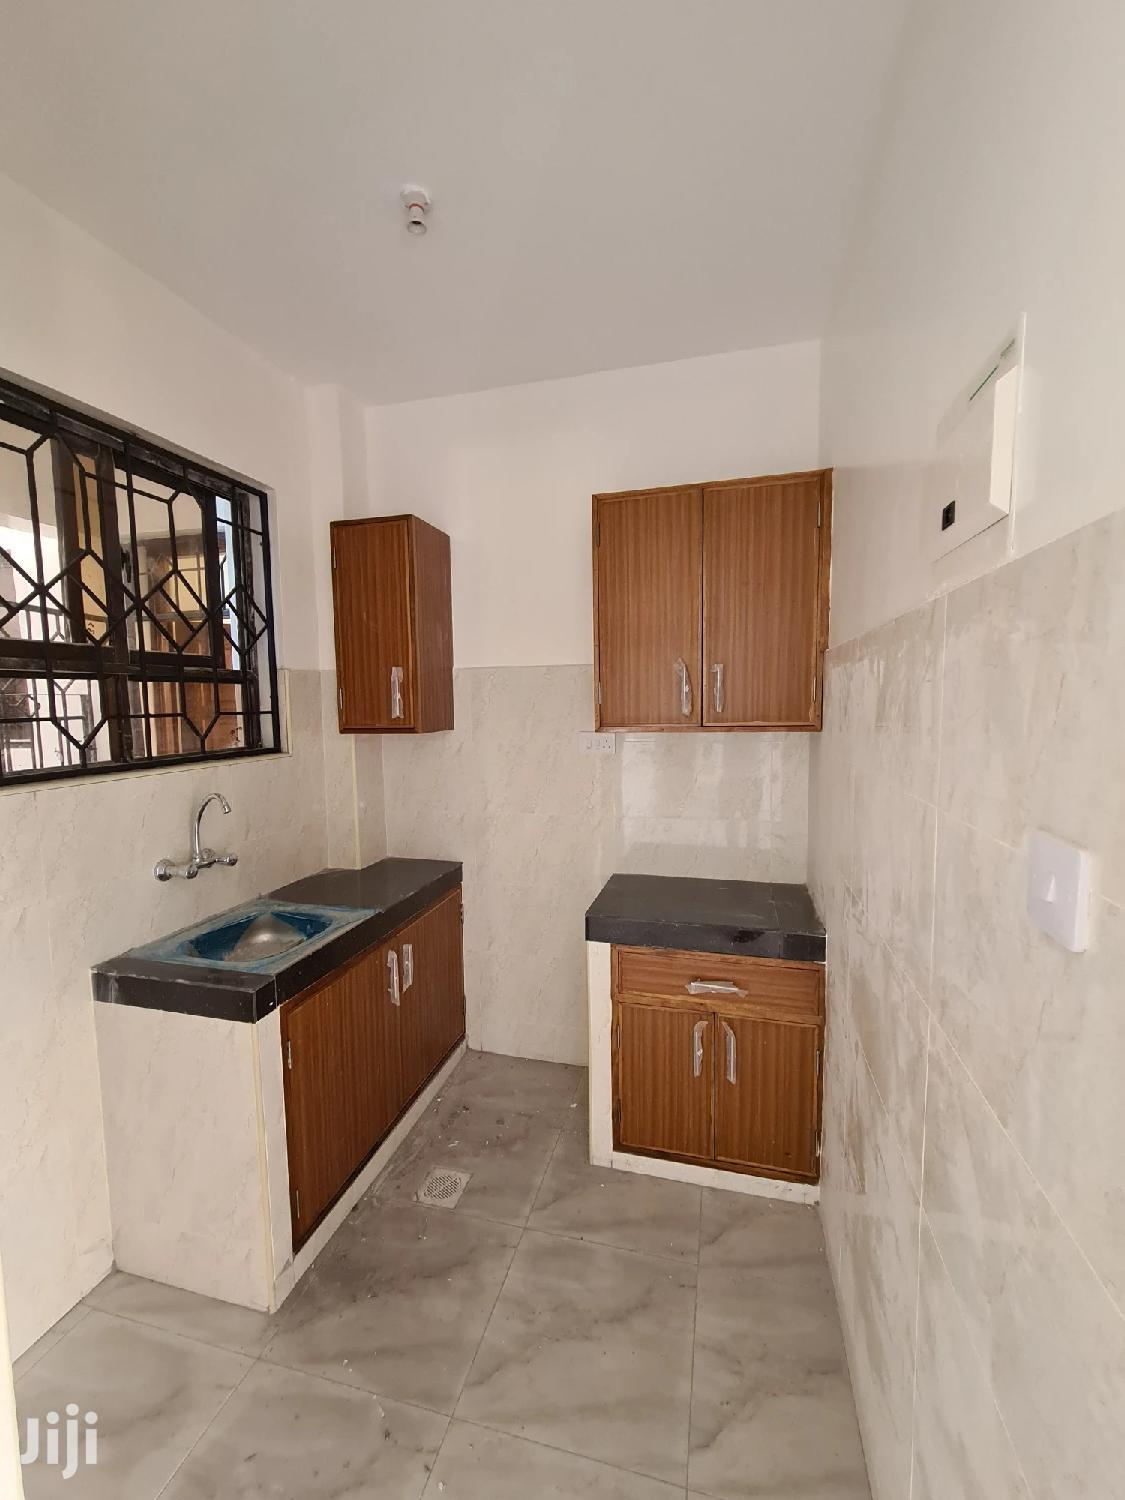 Bright, Spacious Brand New 1 Bedroom Apartments for Rent. | Houses & Apartments For Rent for sale in Nyali Mkomani, Nyali, Kenya